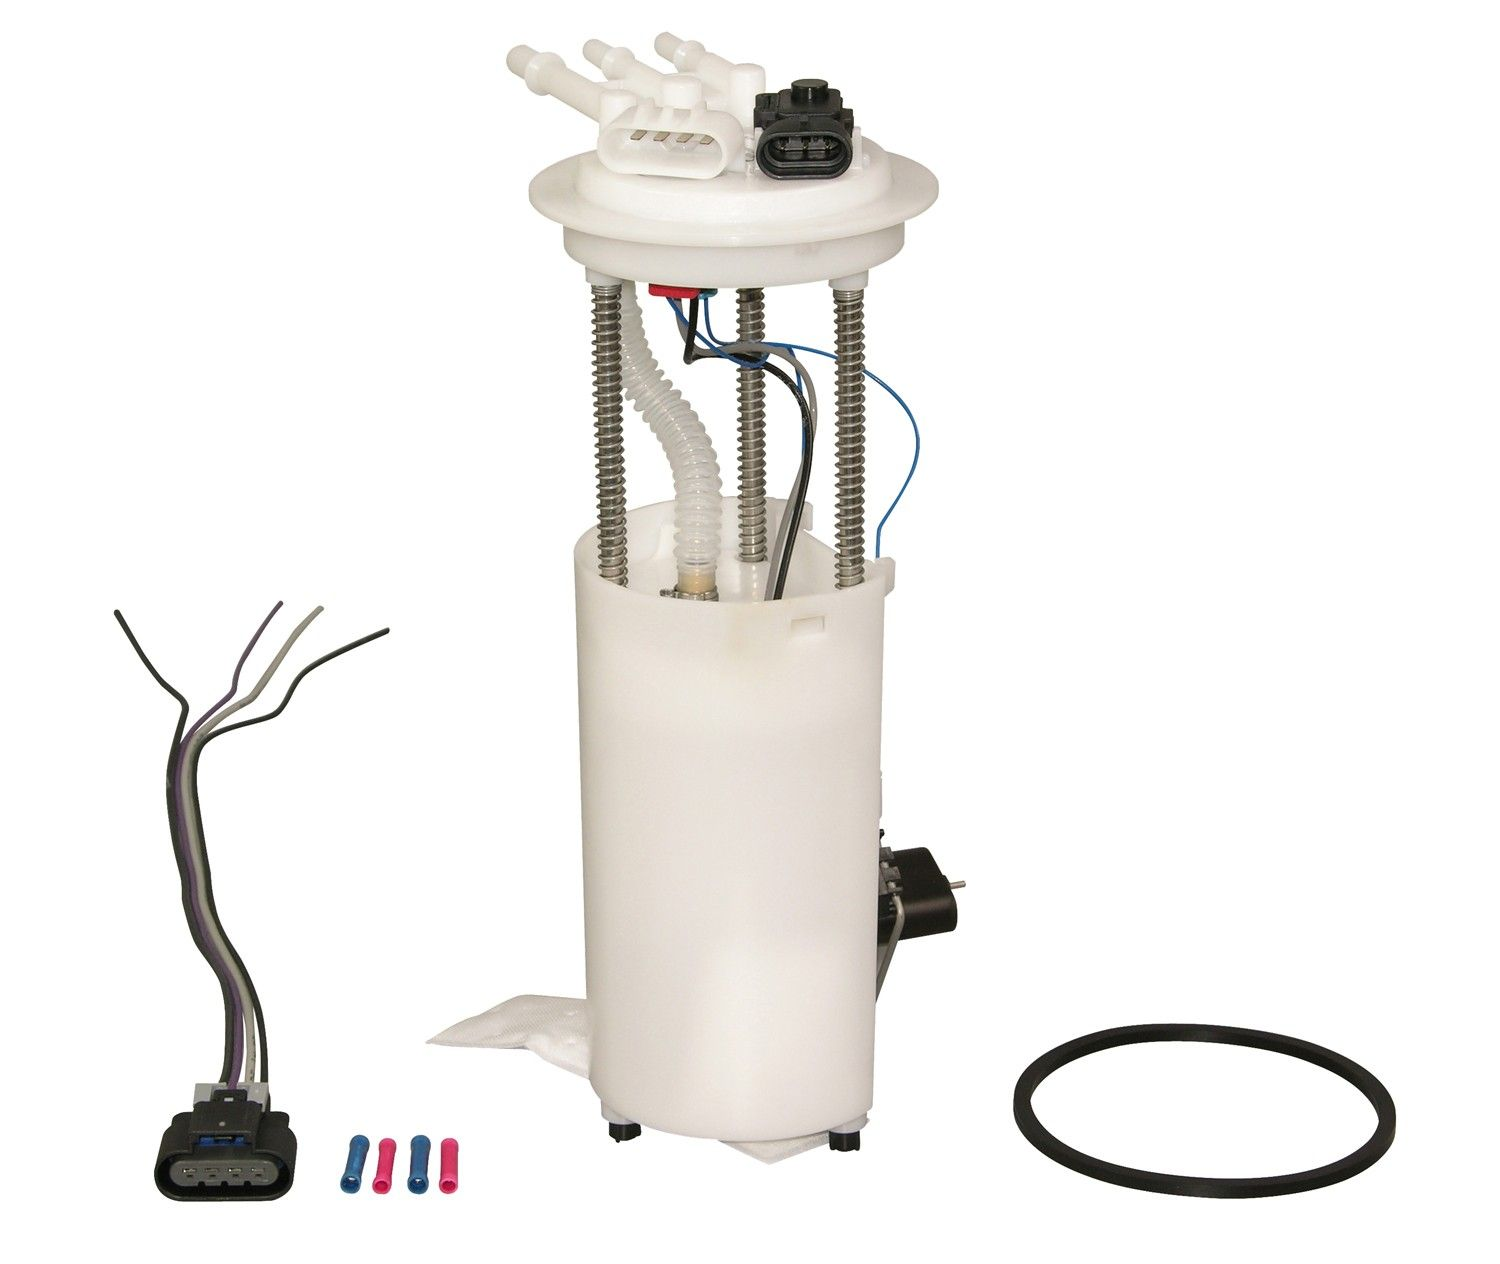 Cadillac Deville Fuel Pump Module Assembly Replacement Acdelco 1948 Wiring Harness Includes Sending Unit Float Reservoir Strainer Upgraded And Tank Seal Included